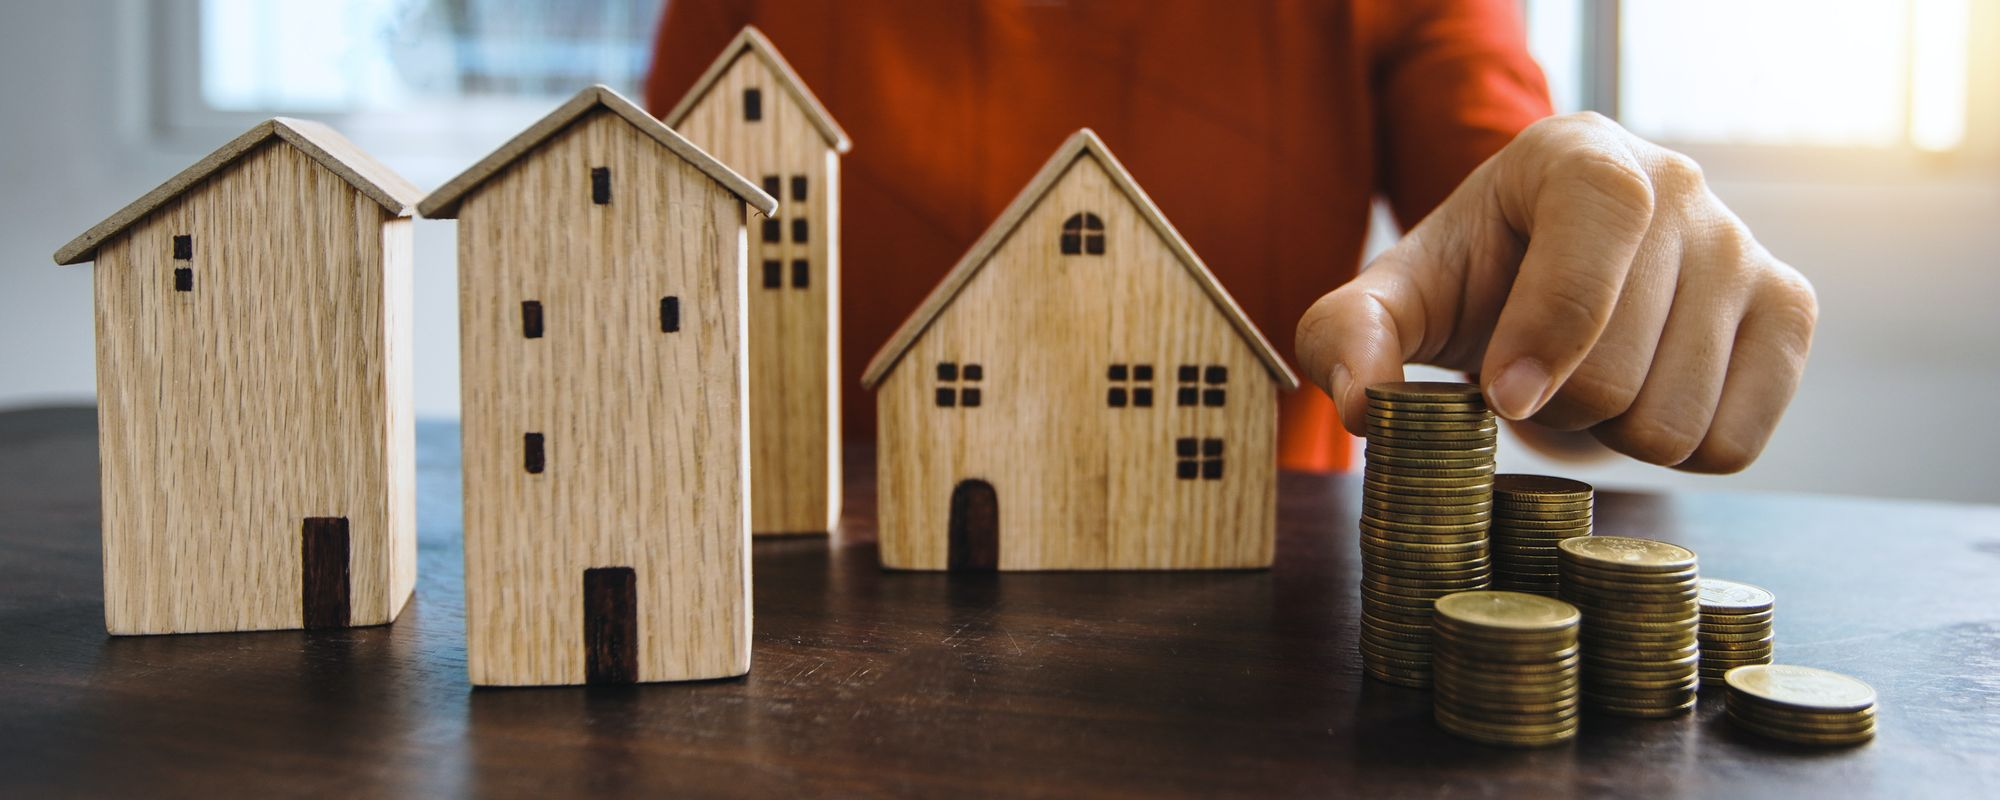 Ramp up in real estate strategies amid COVID-19 uncertainty